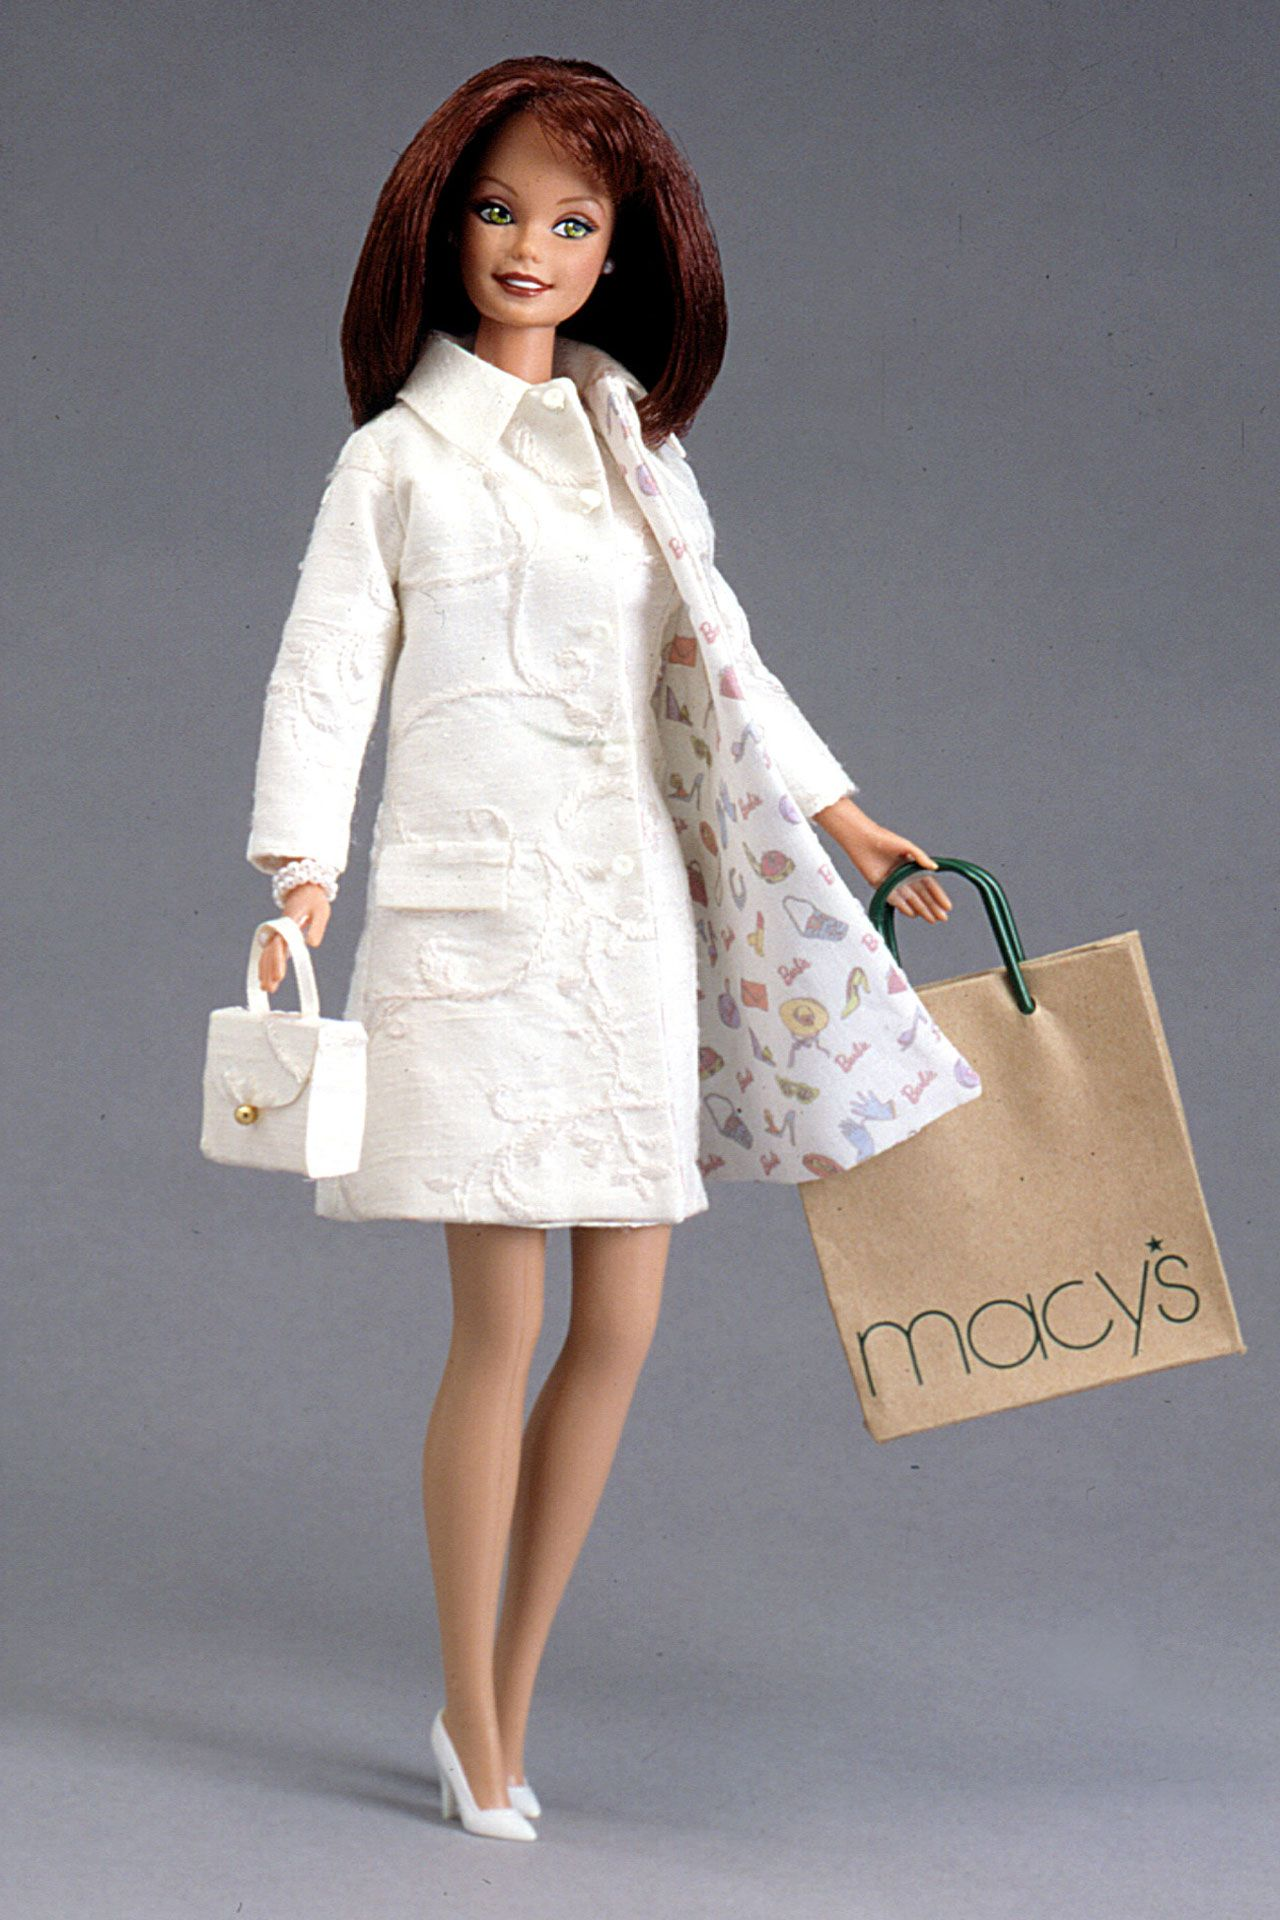 Barbie's designer fashion: from Dior to Burberry (Vogue.com UK)